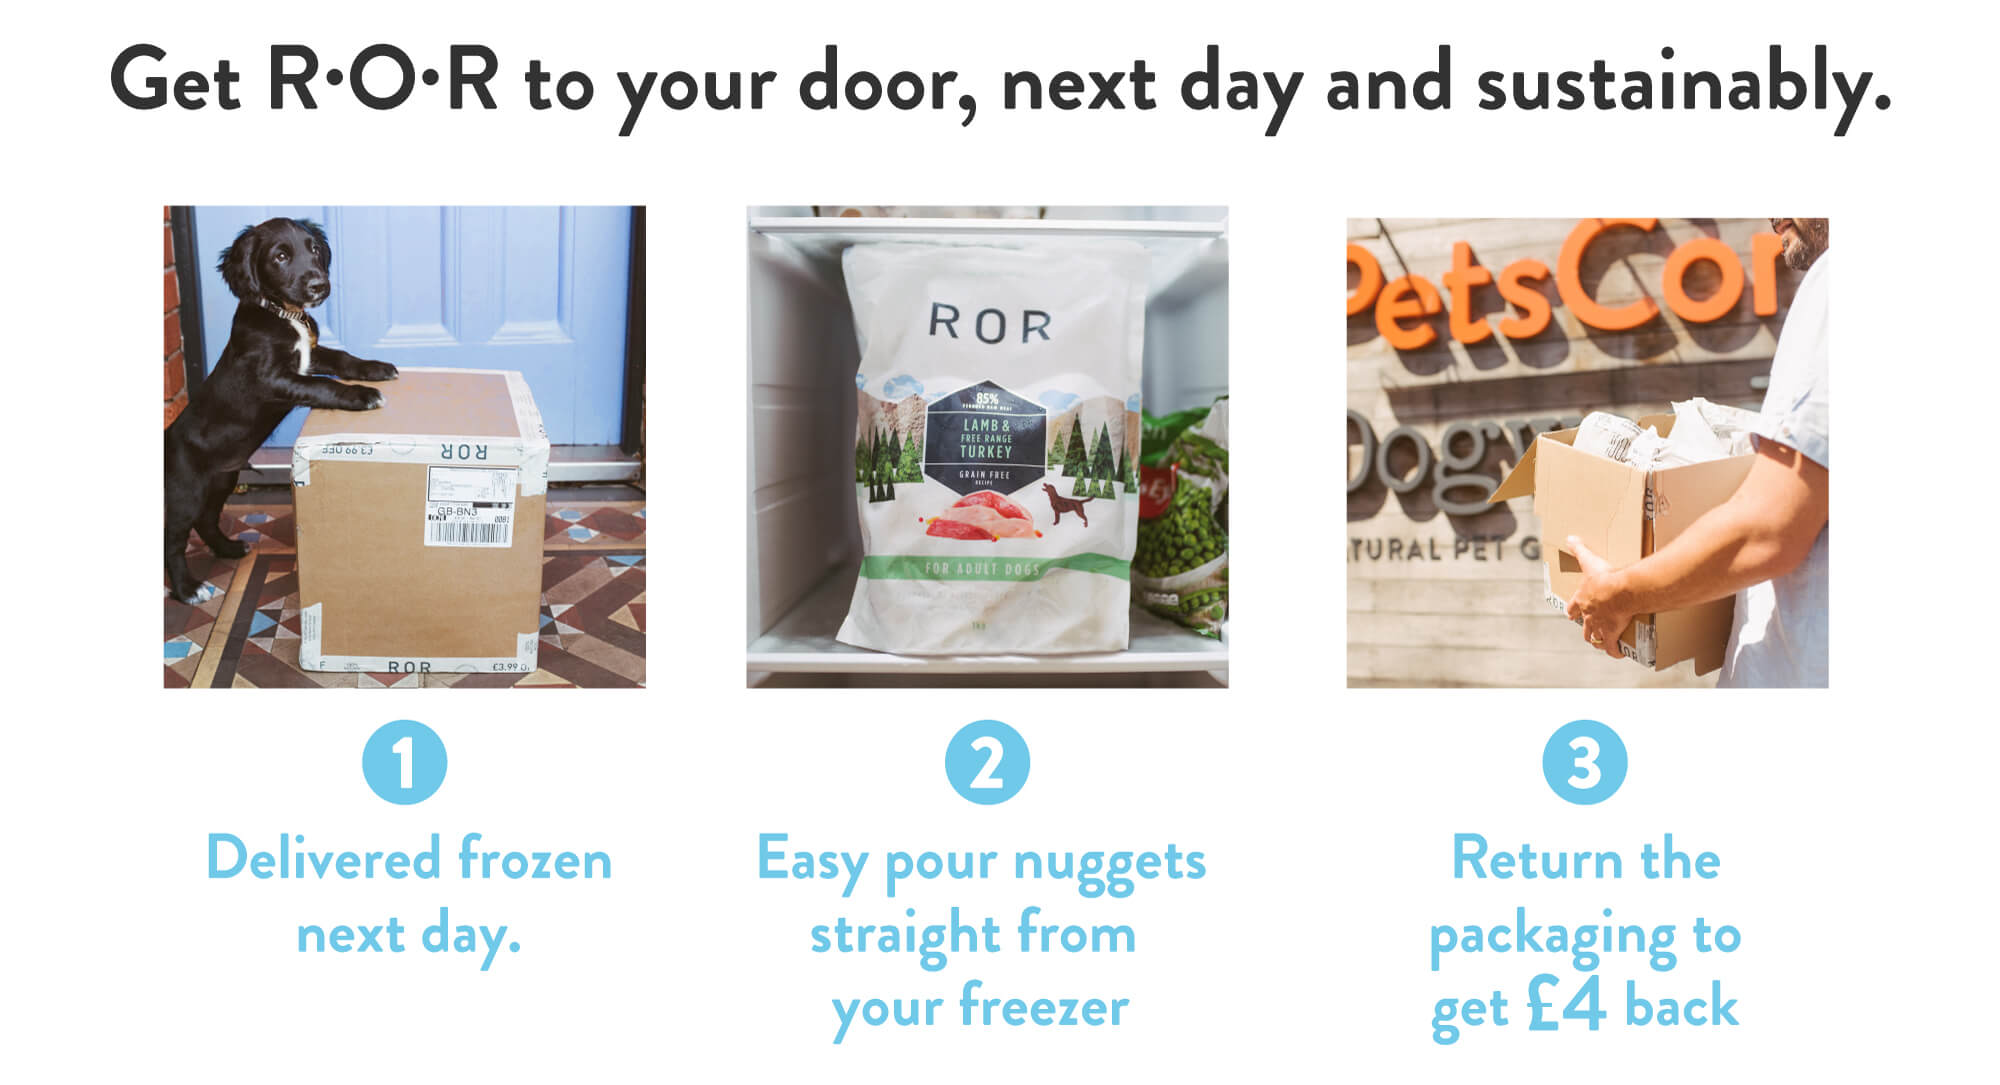 Get R·O·R to your door, next day and sustainably: 1. Delivered frozen next day. - 2. Easy pour nuggets straight from your freezer. - 3. Return the packaging to get £4 back.